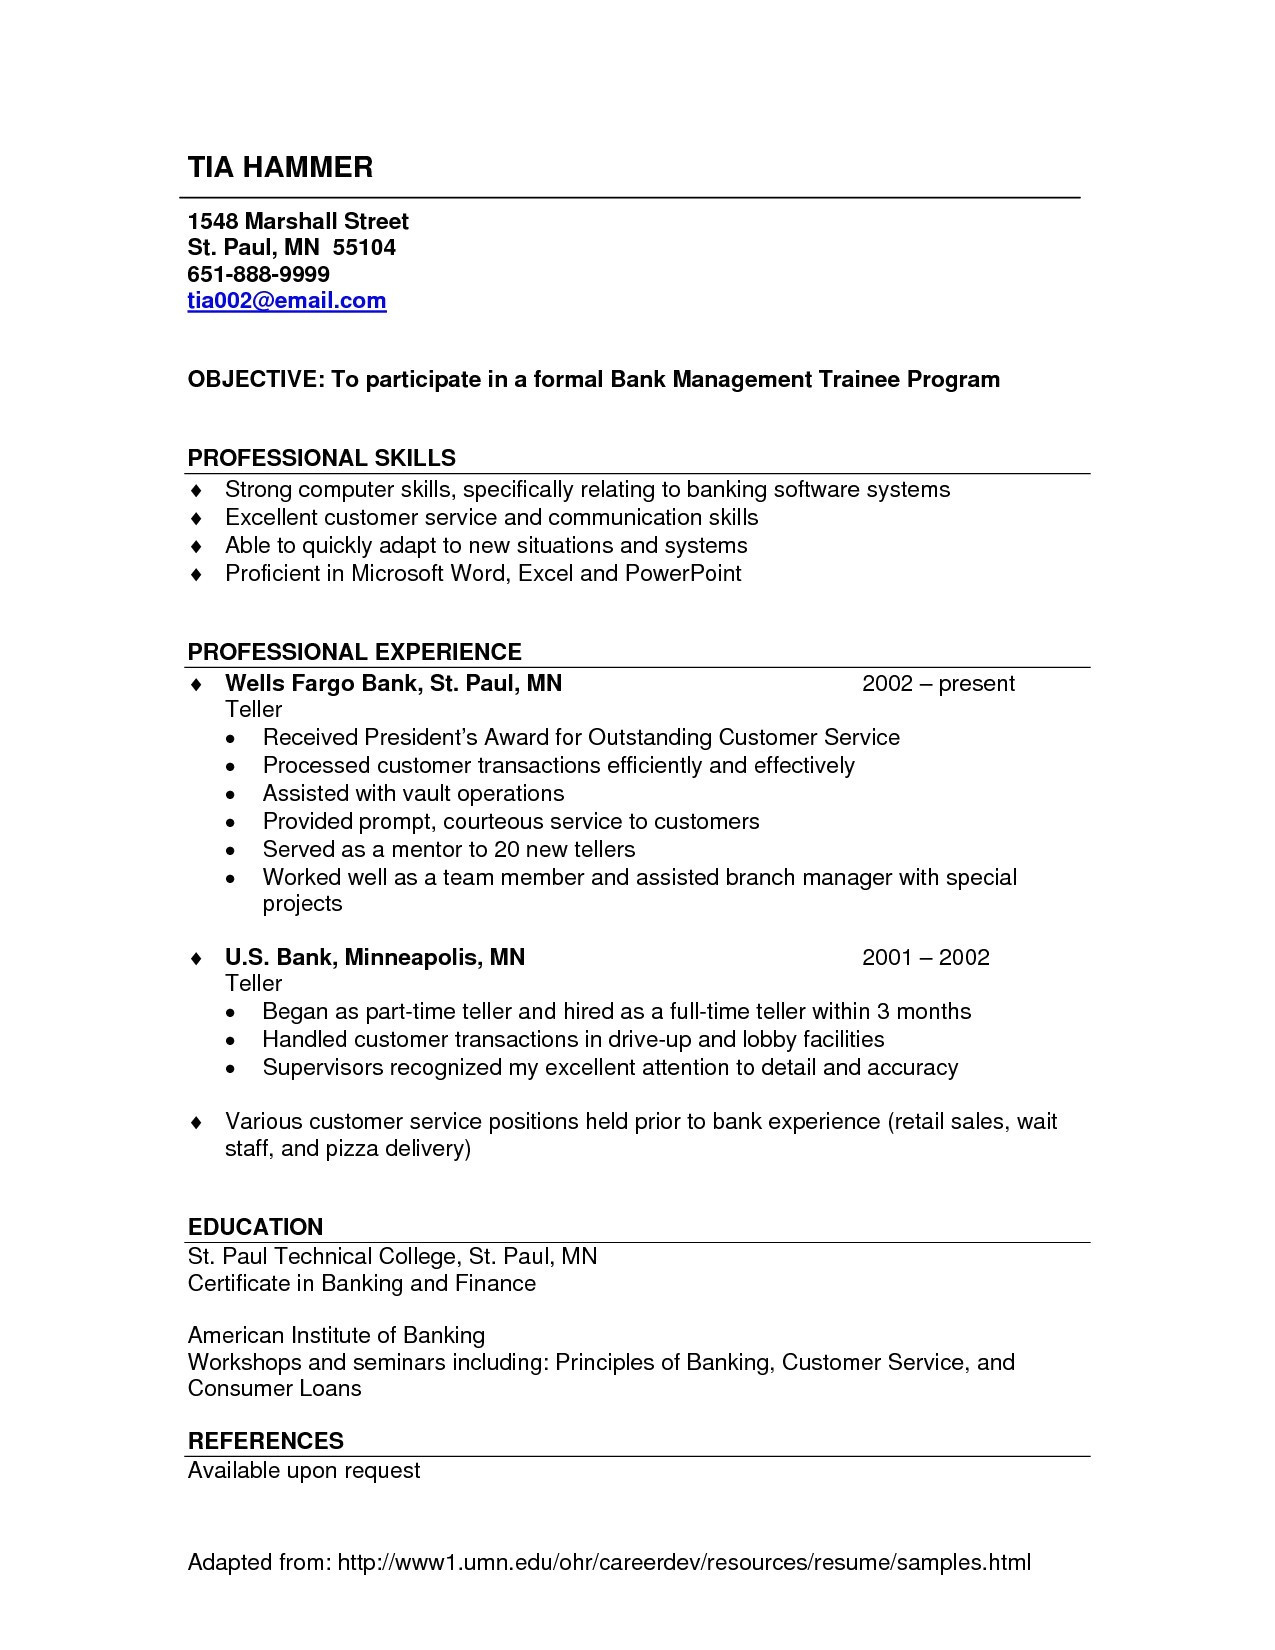 Professional Resume Layout - Apa Resume Template New Examples A Resume Fresh Resume Examples 0d